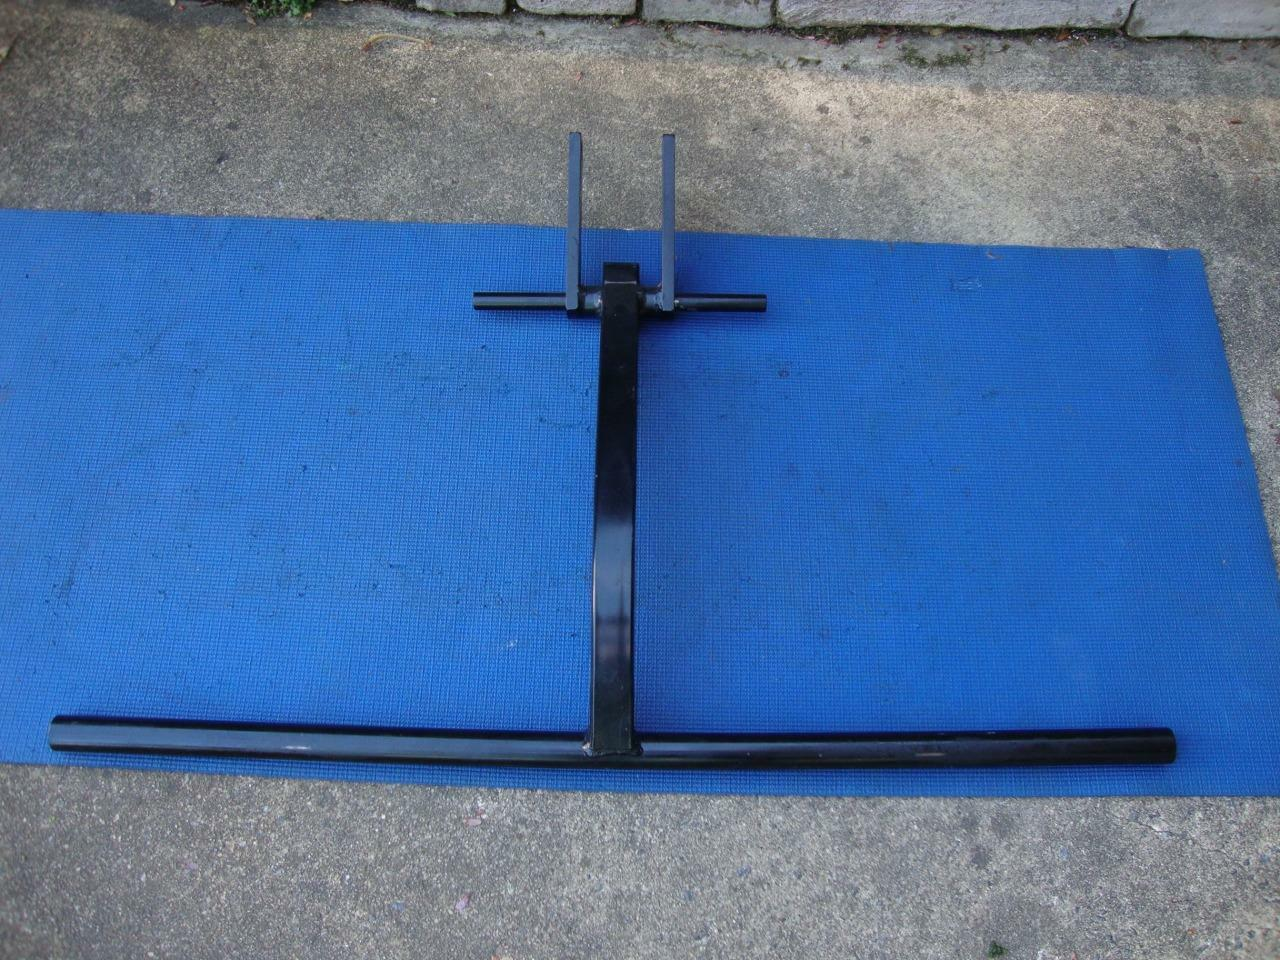 Awesome SOLOFLEX Squat bar   Barbell Arm Attachment  Cross-Fit - Will ship